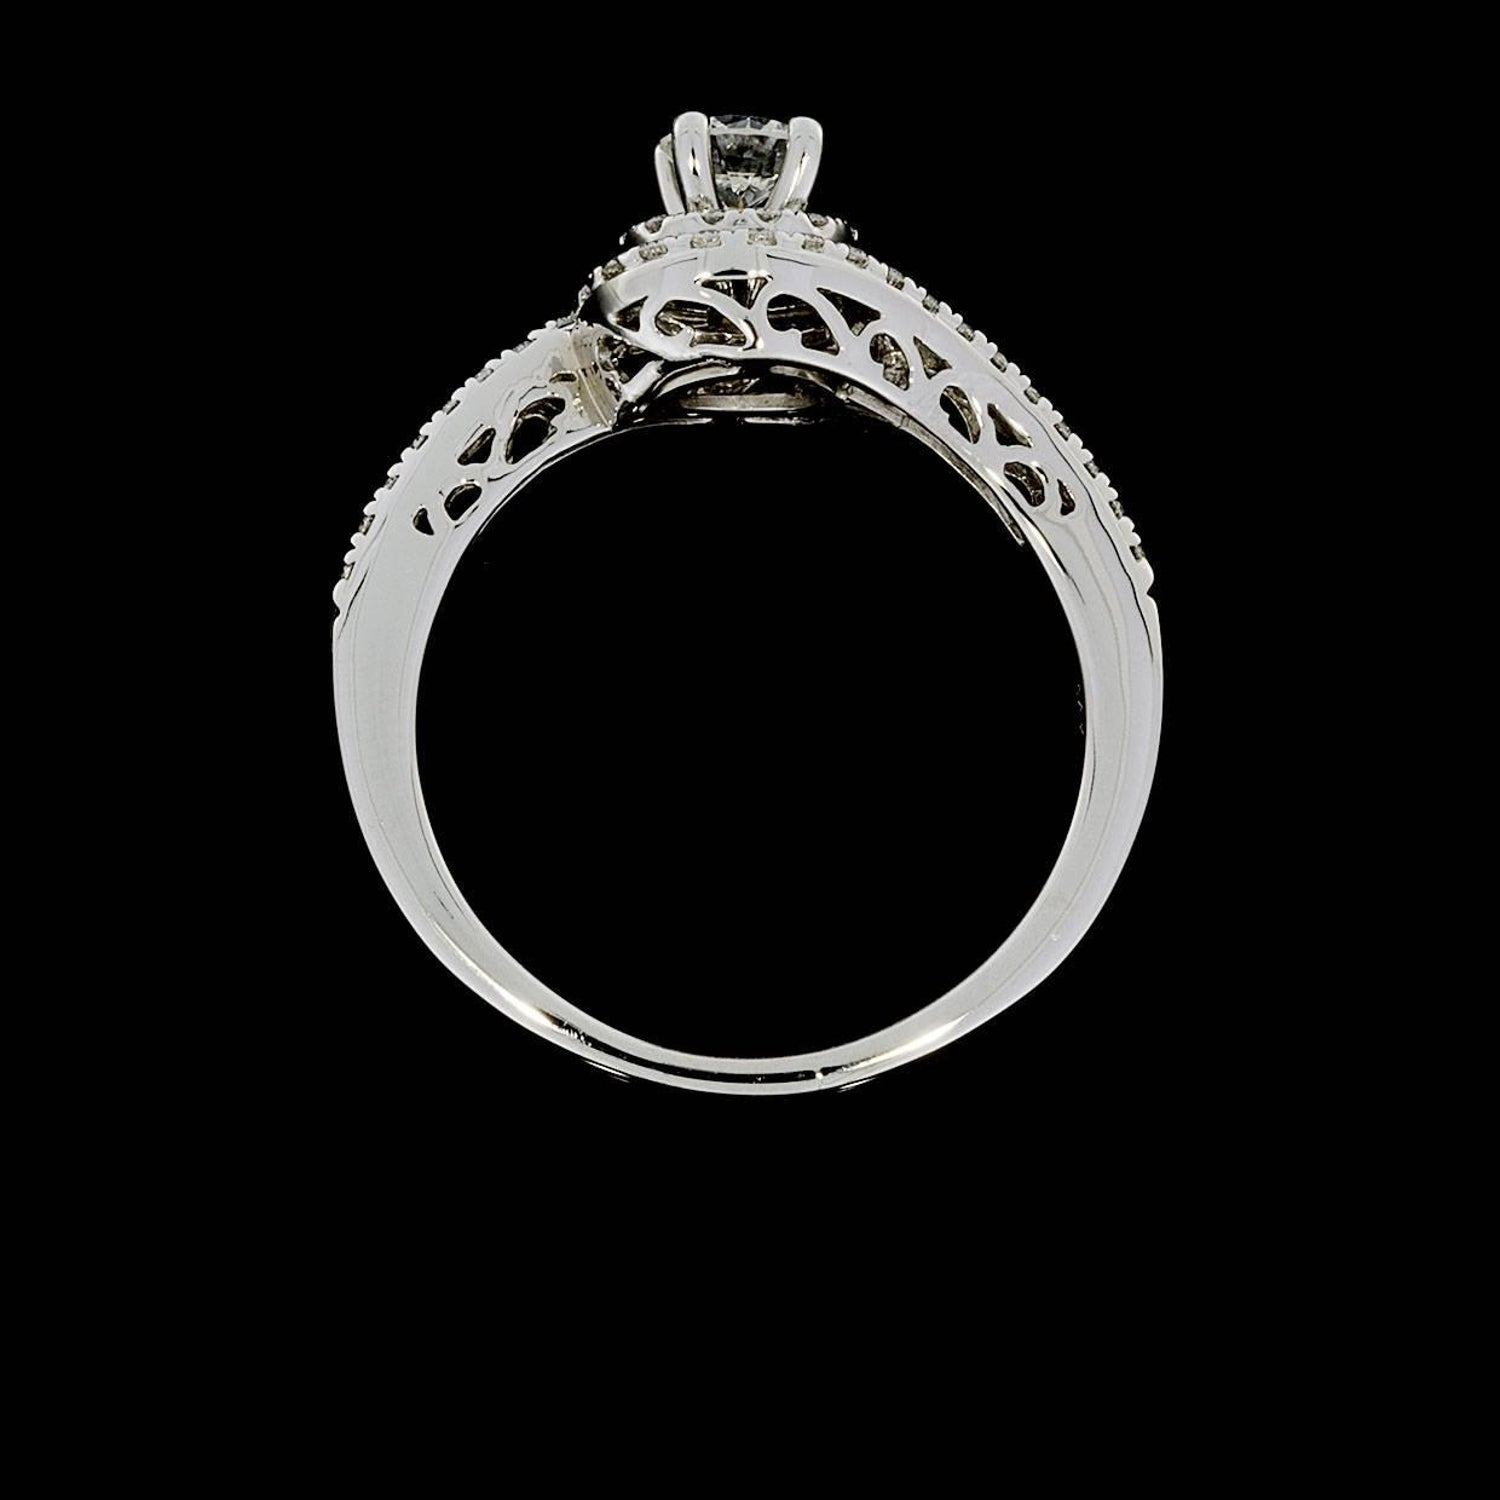 engagement inspirational kay of heart best jewelry rings at lovely necklace tolkowsky diamond wedding jewelers